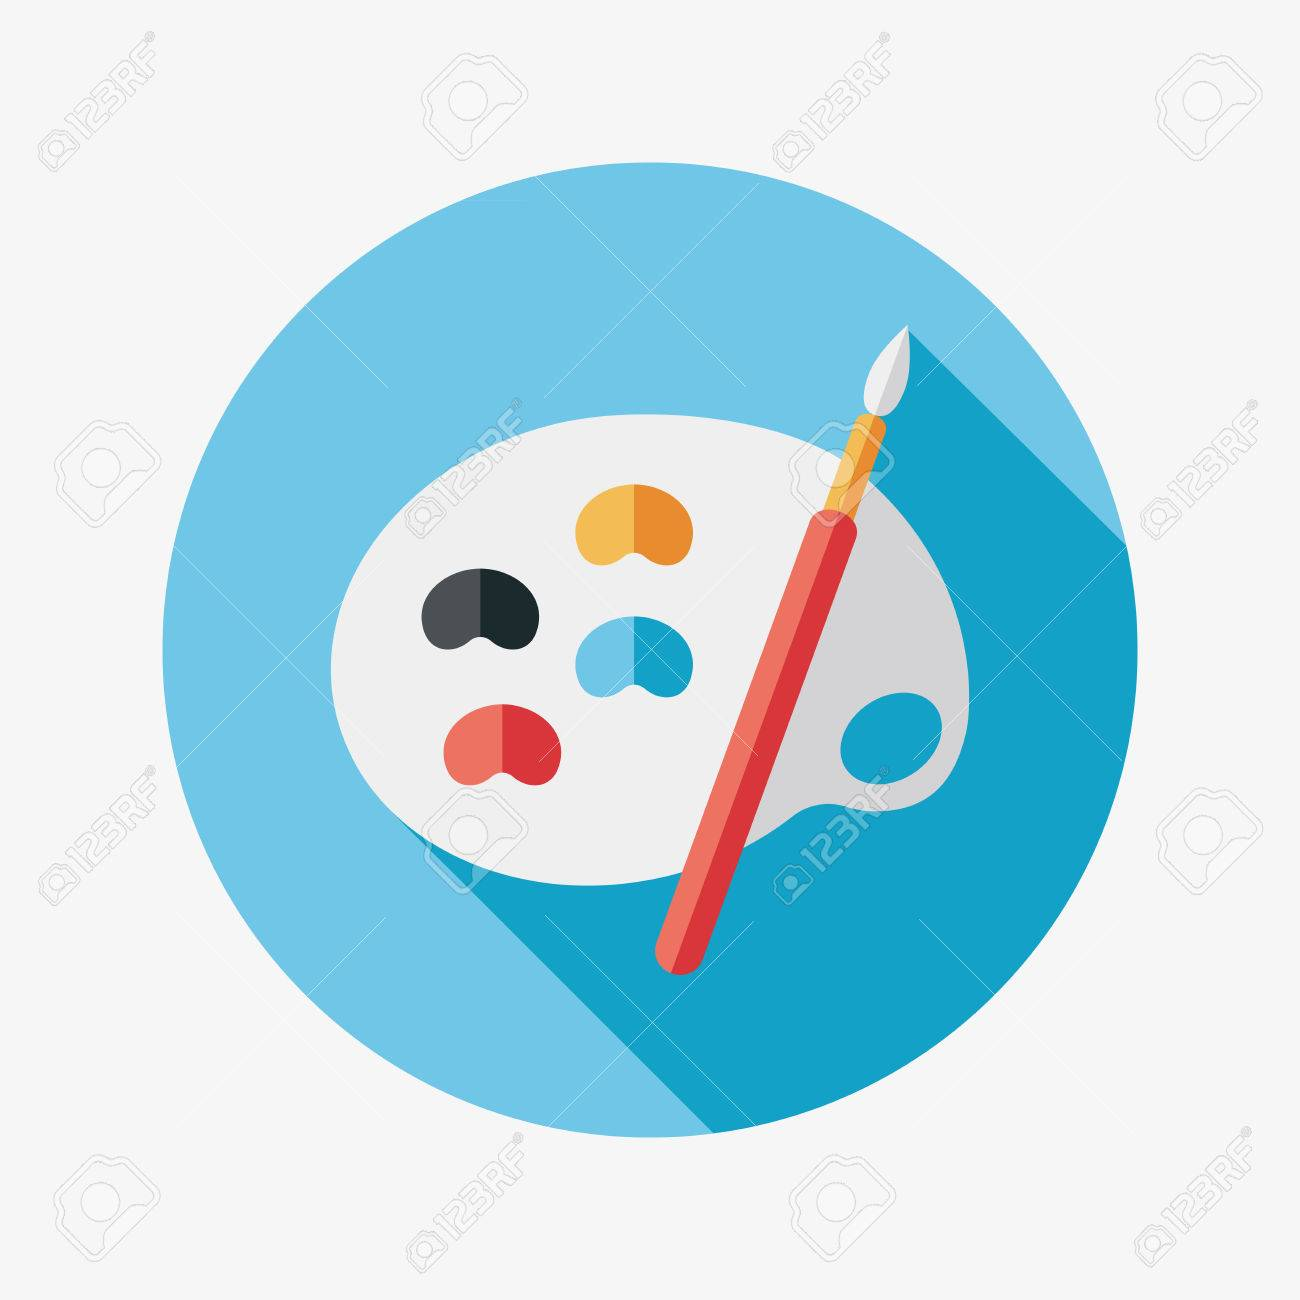 Art palette with paint brush flat icon with long shadow - 31018559